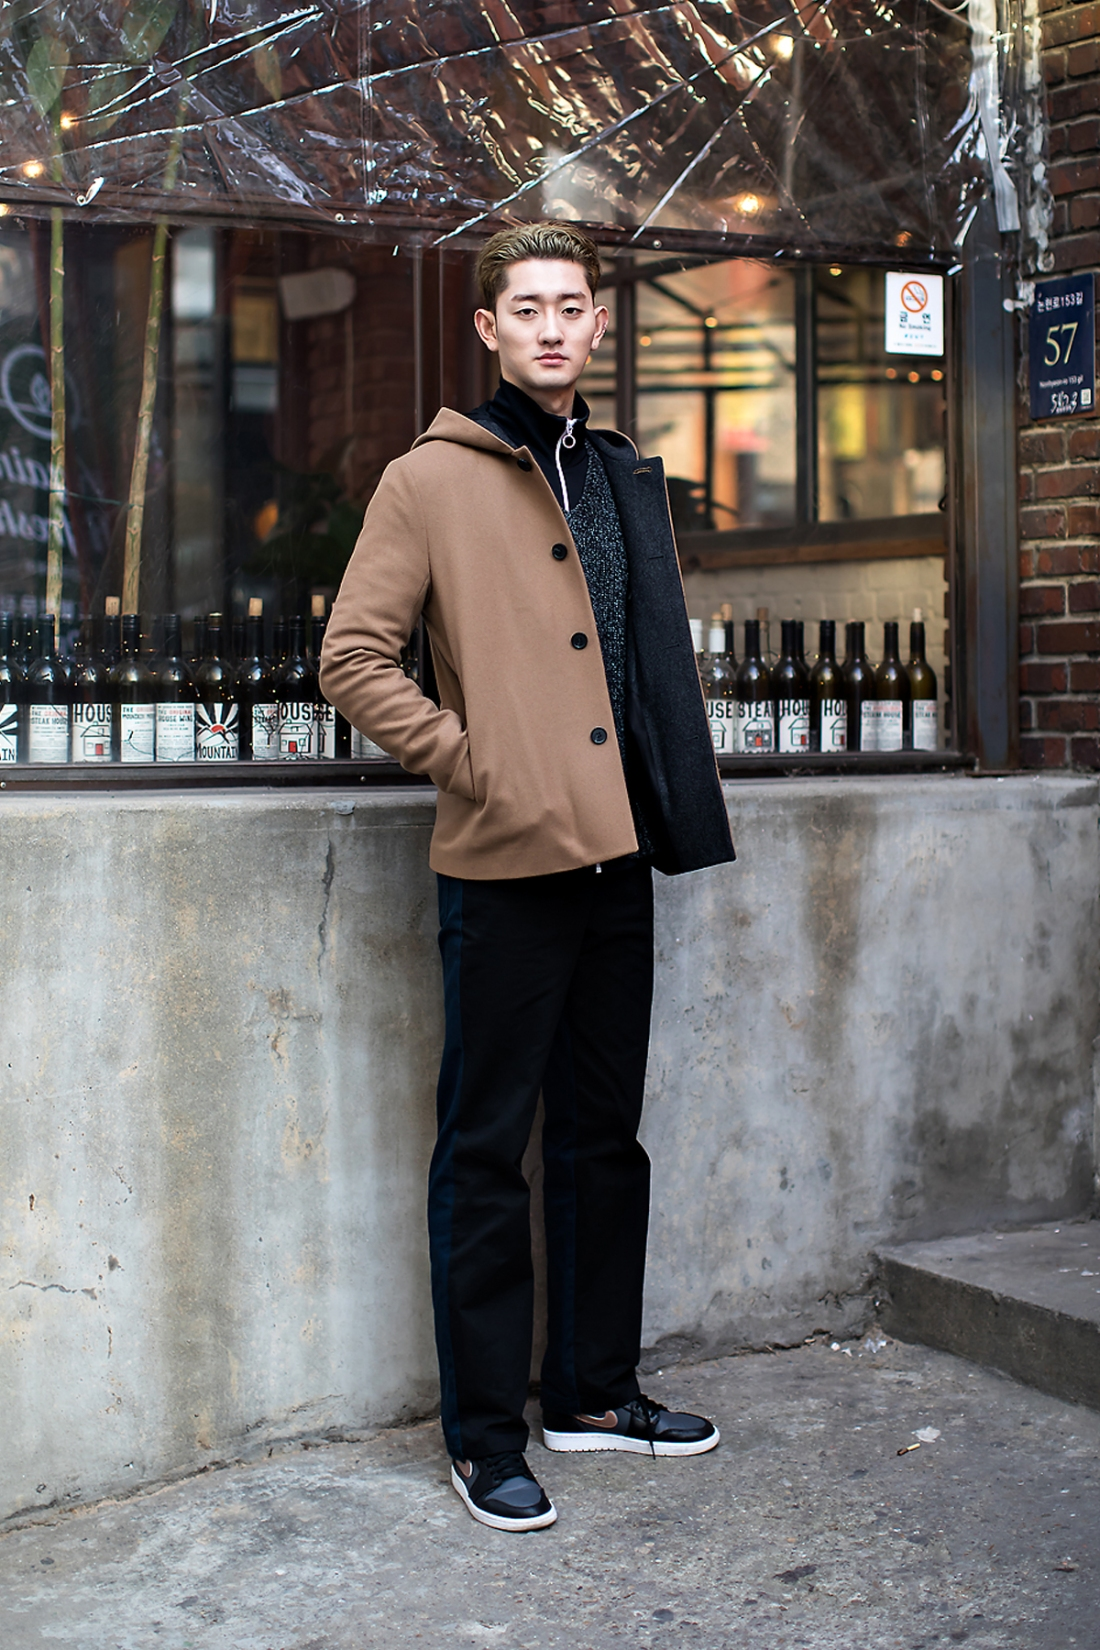 Oh Kyusik, Street Fashion 2017 in SEOUL.jpg